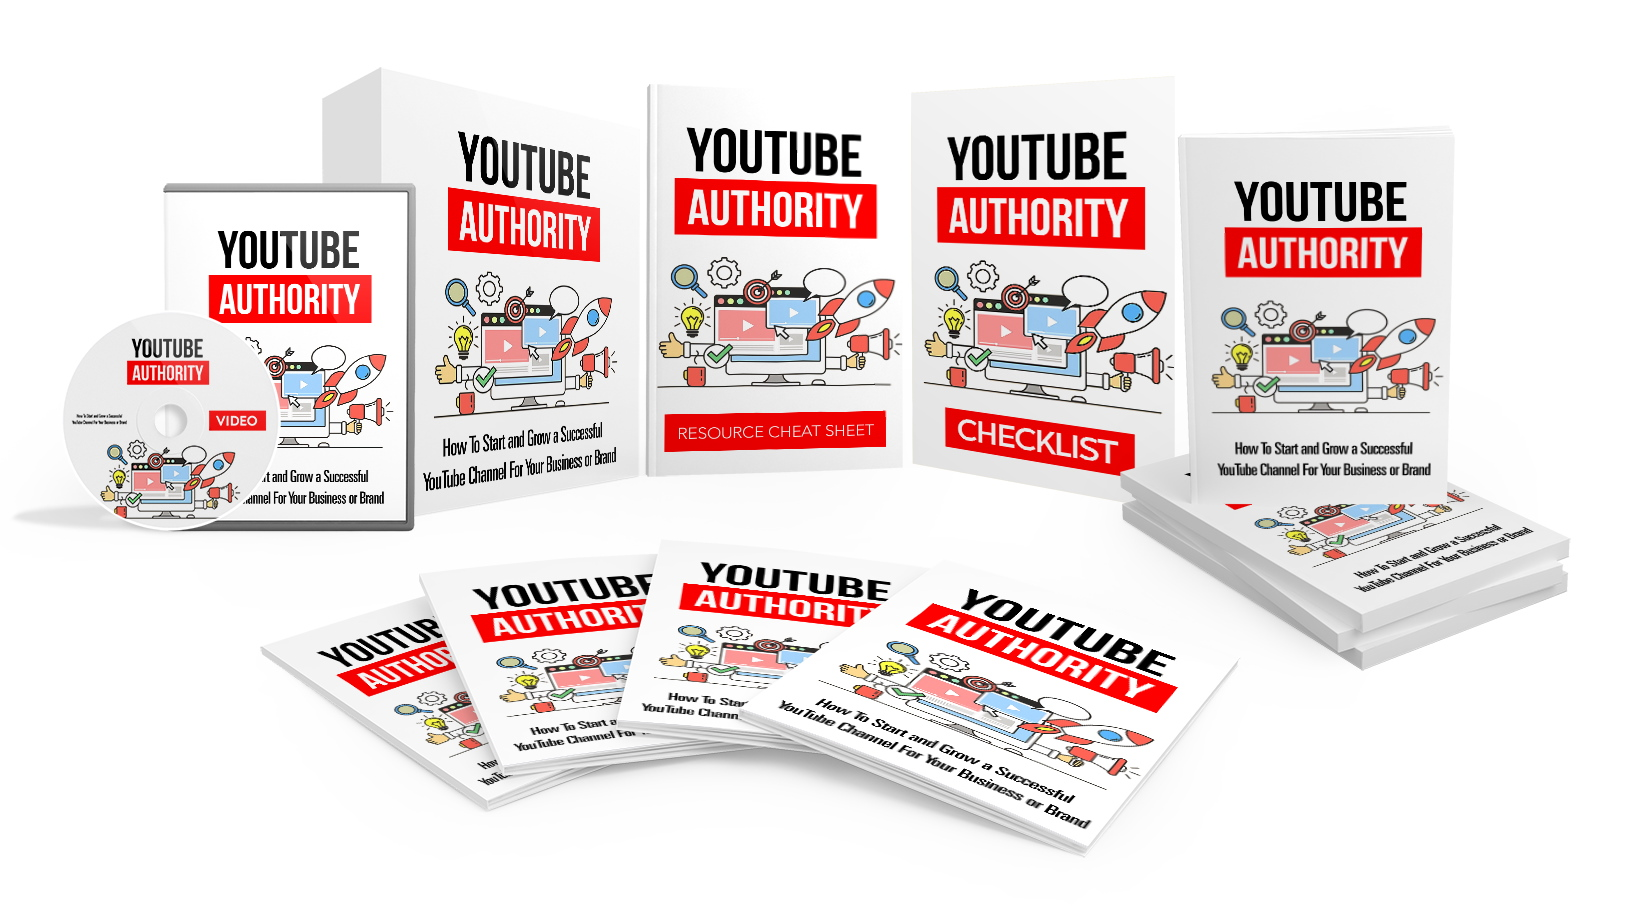 I will give you YouTube Authority,  Video Course with Reselling Tools